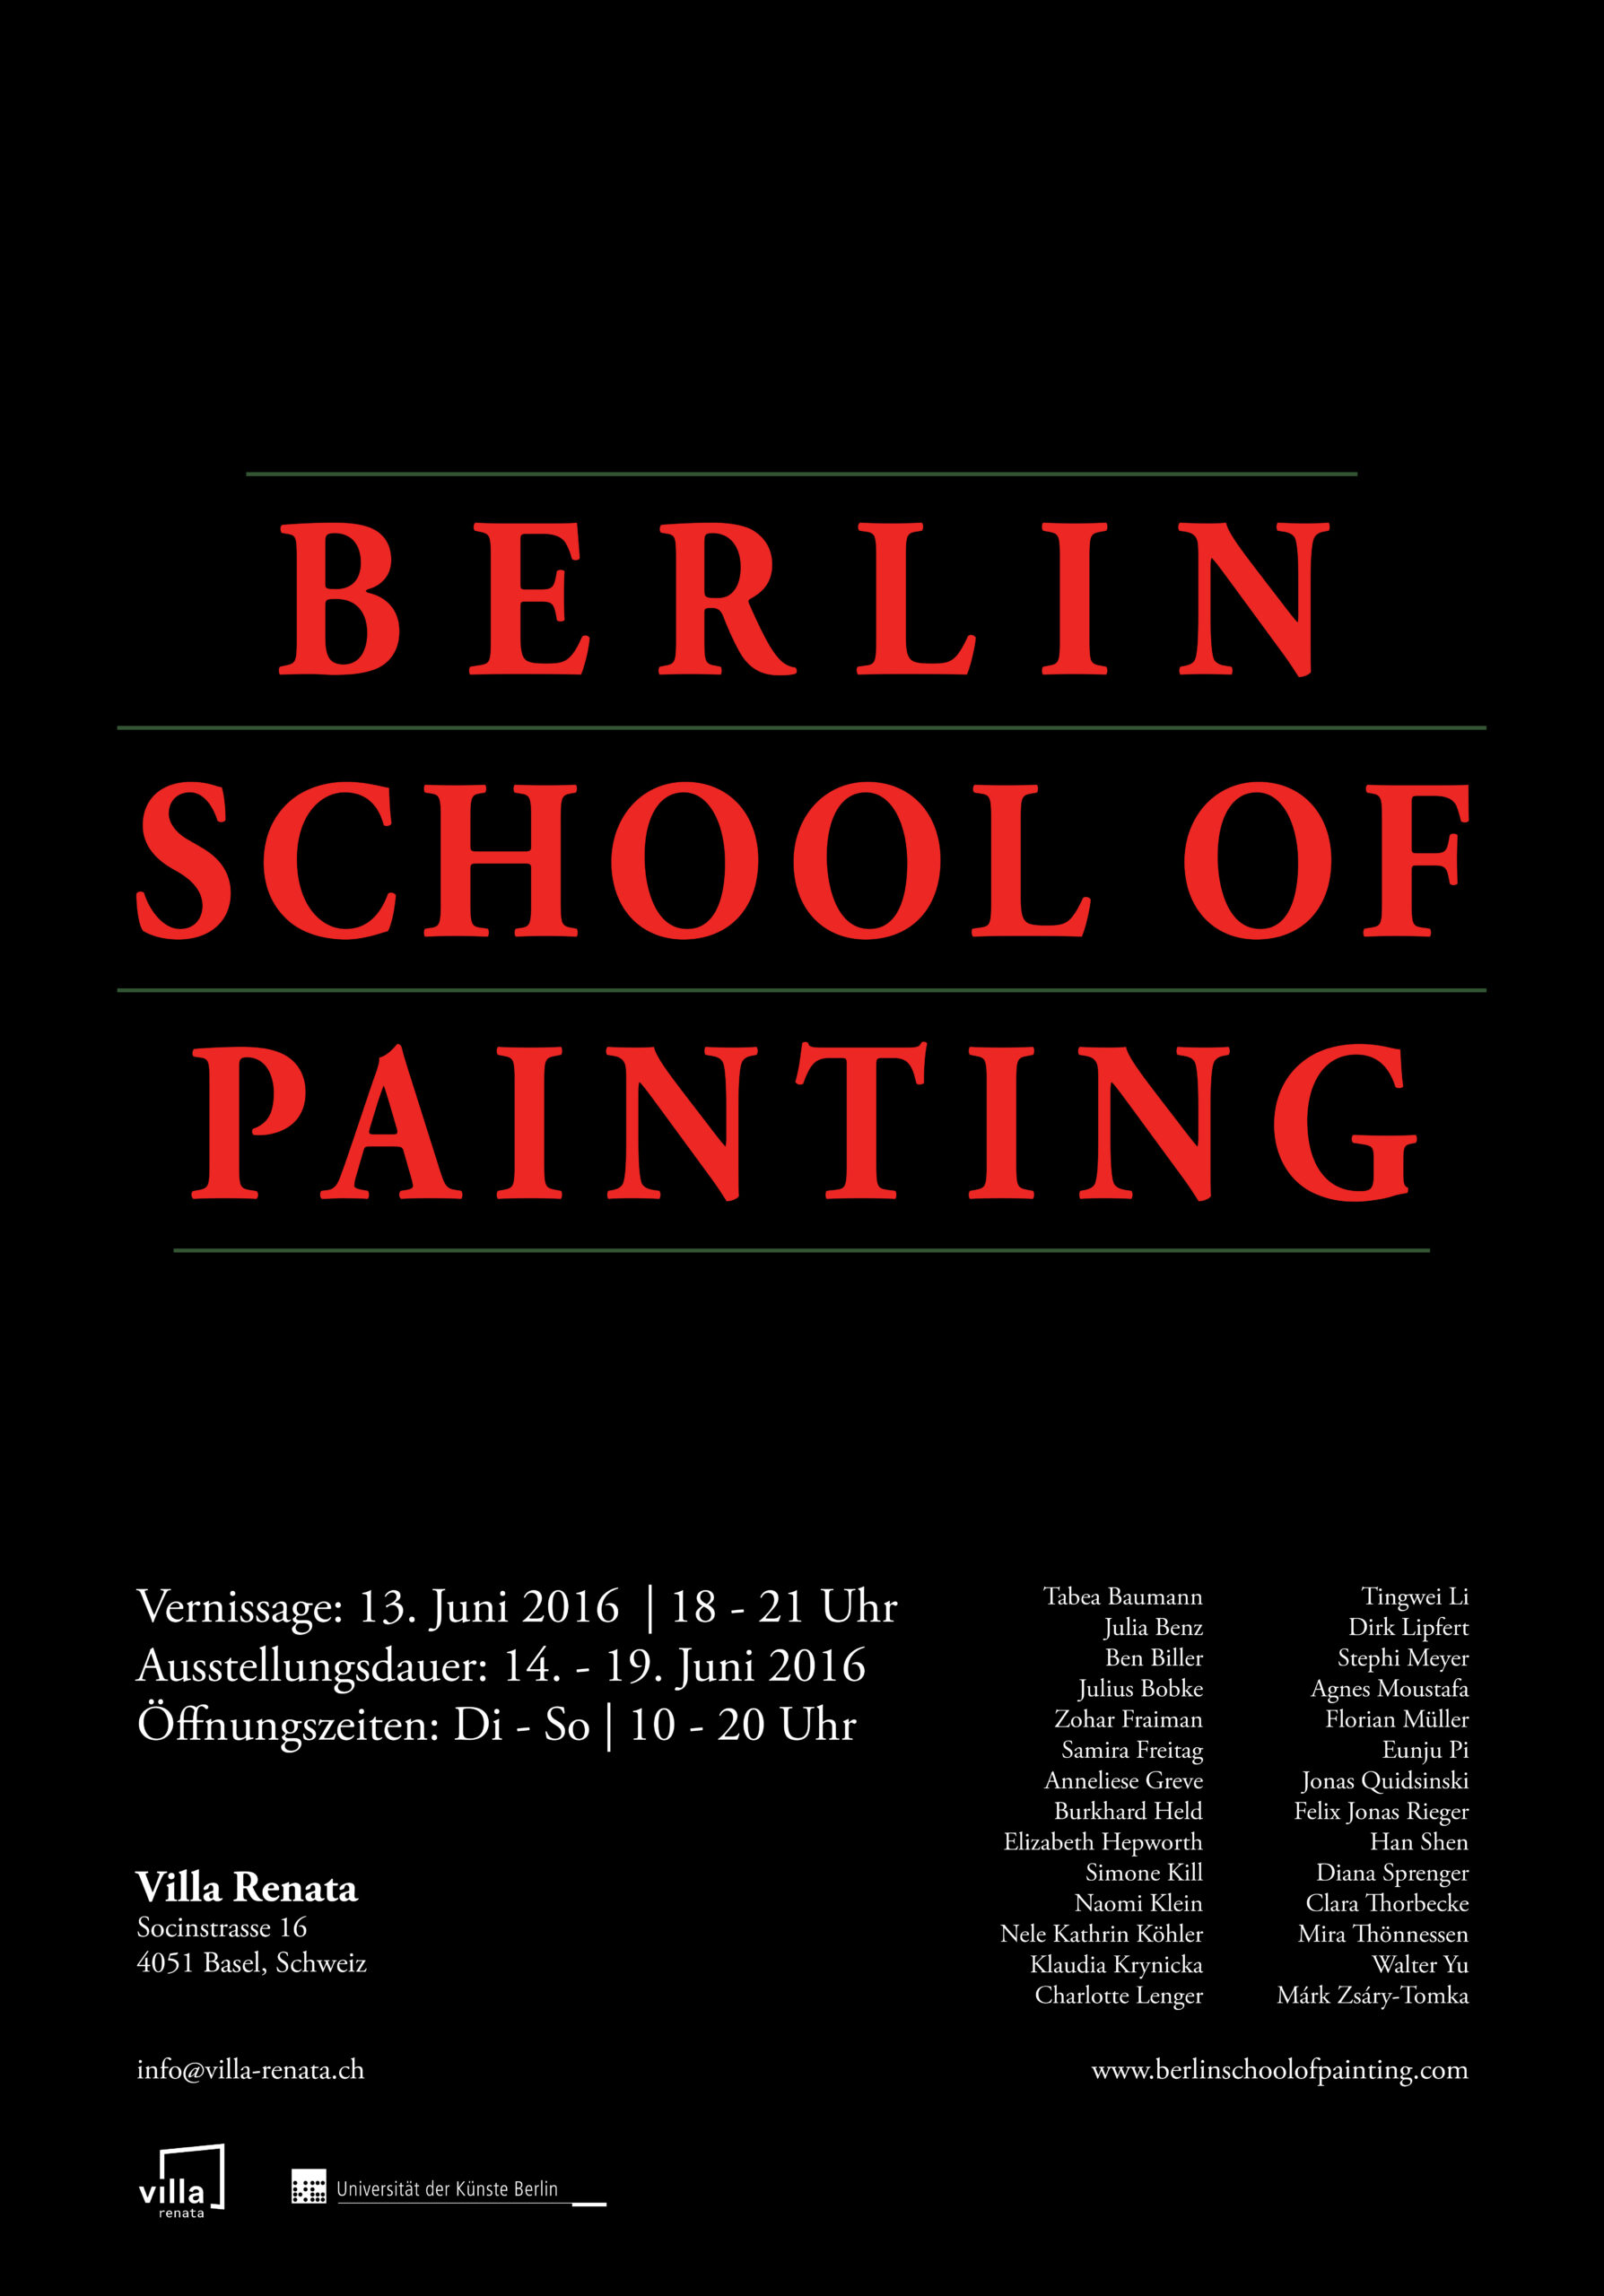 Berlin School of Painting